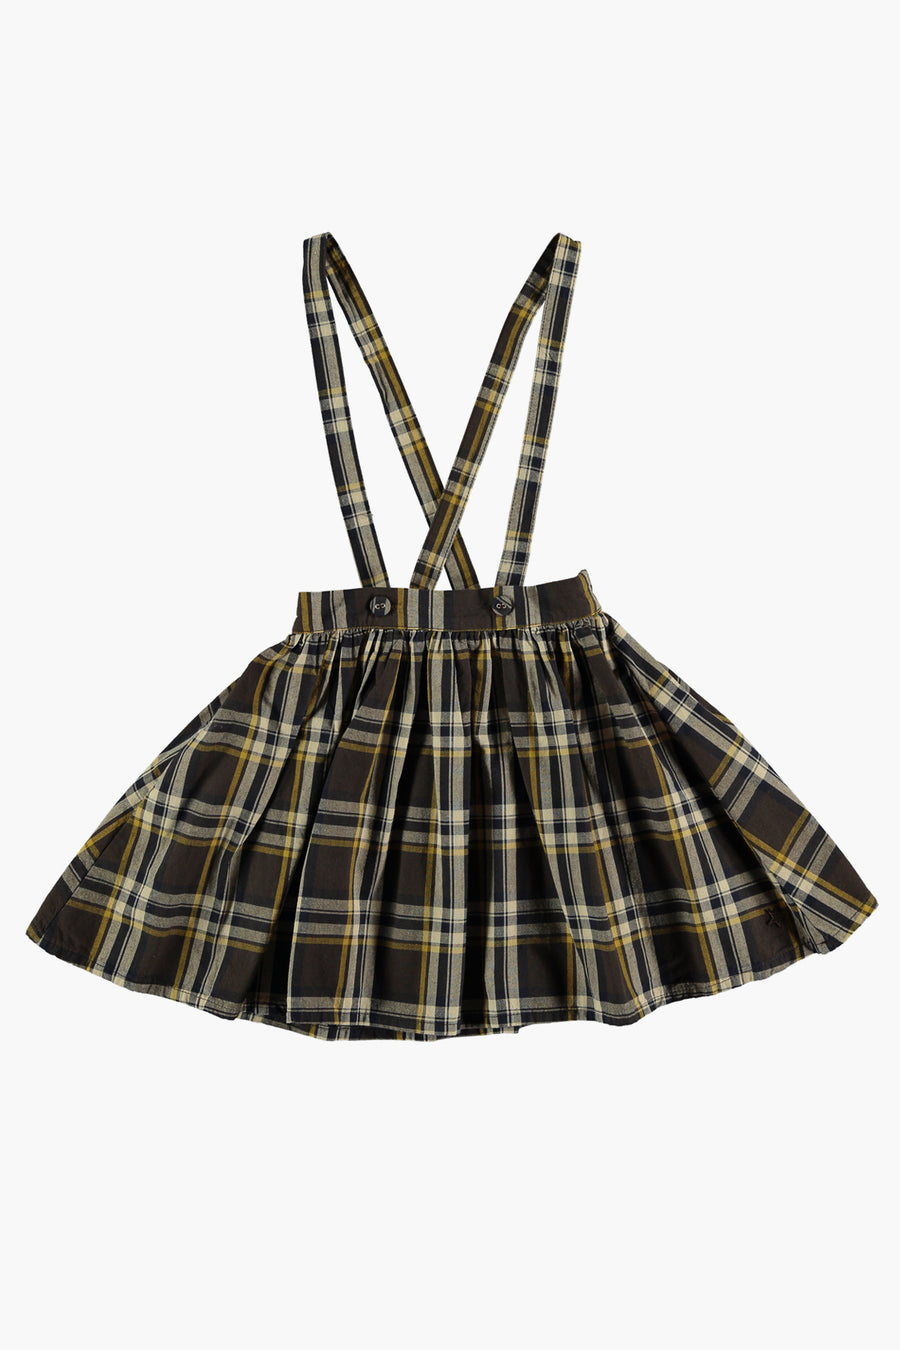 Tocoto Vintage Tartan Plaid Girls Jumper Dress